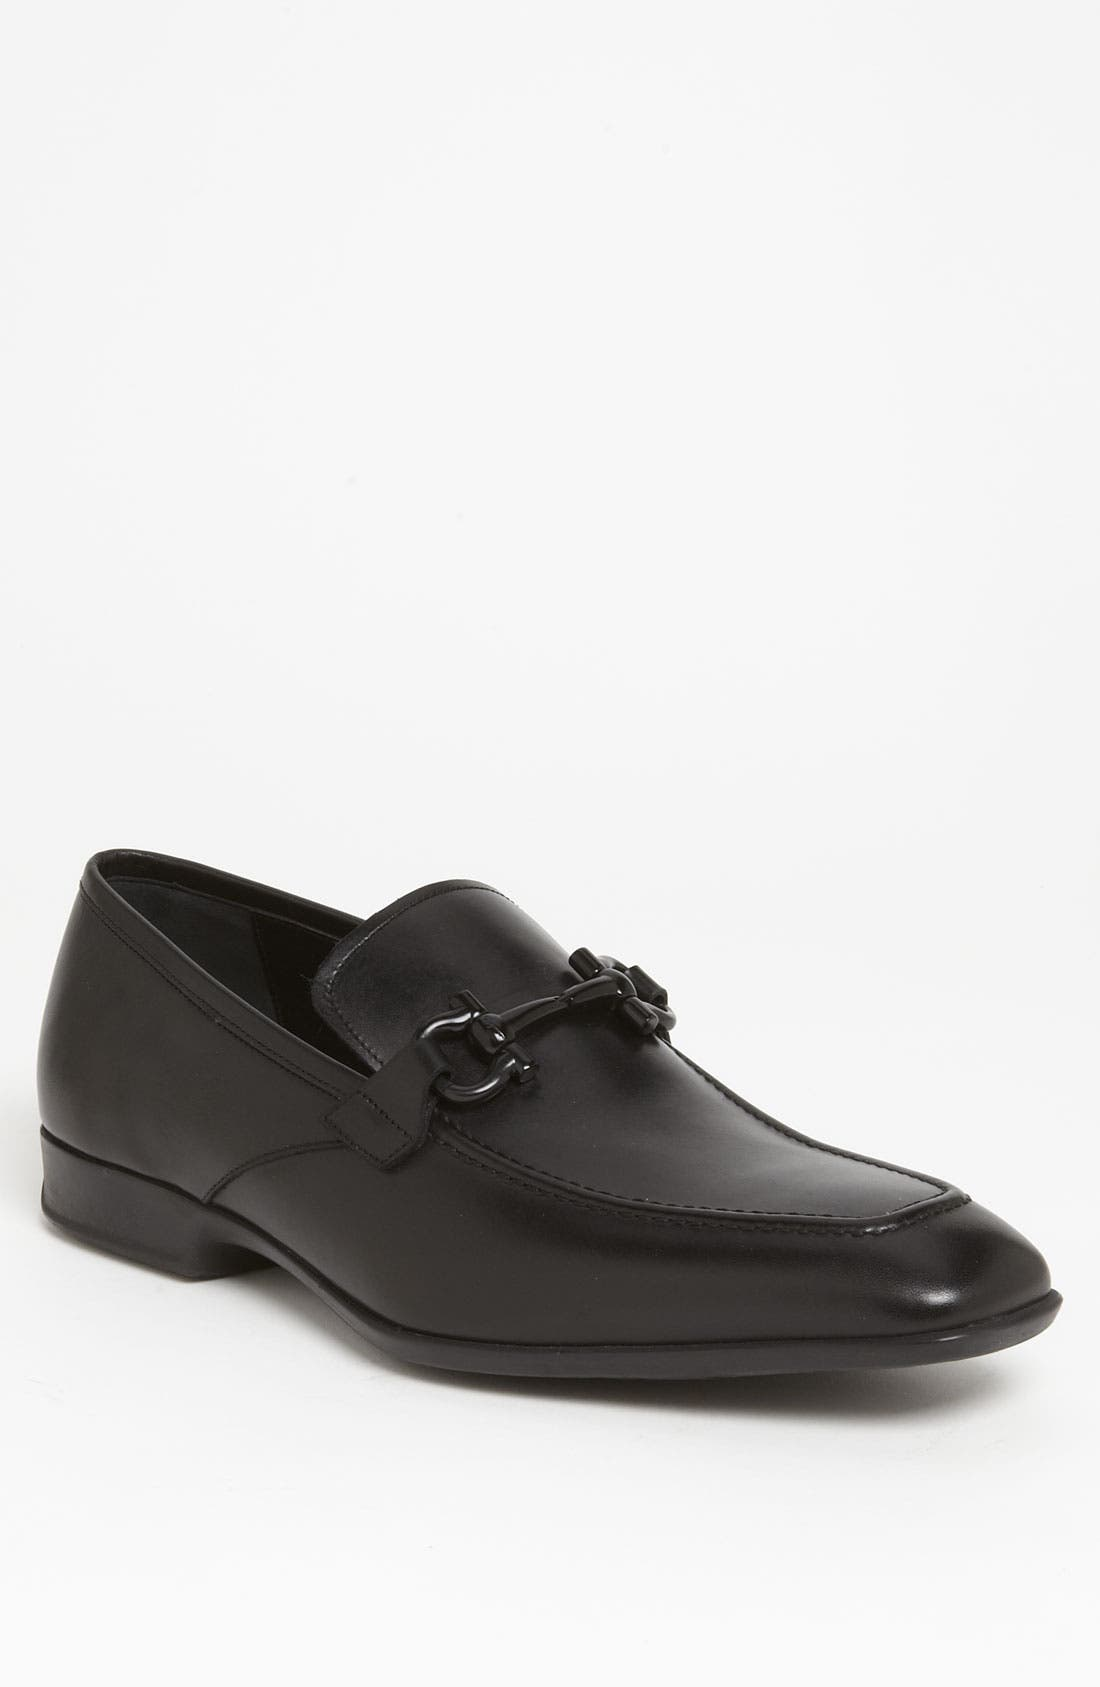 Main Image - Salvatore Ferragamo 'Gregory' Loafer (Men)